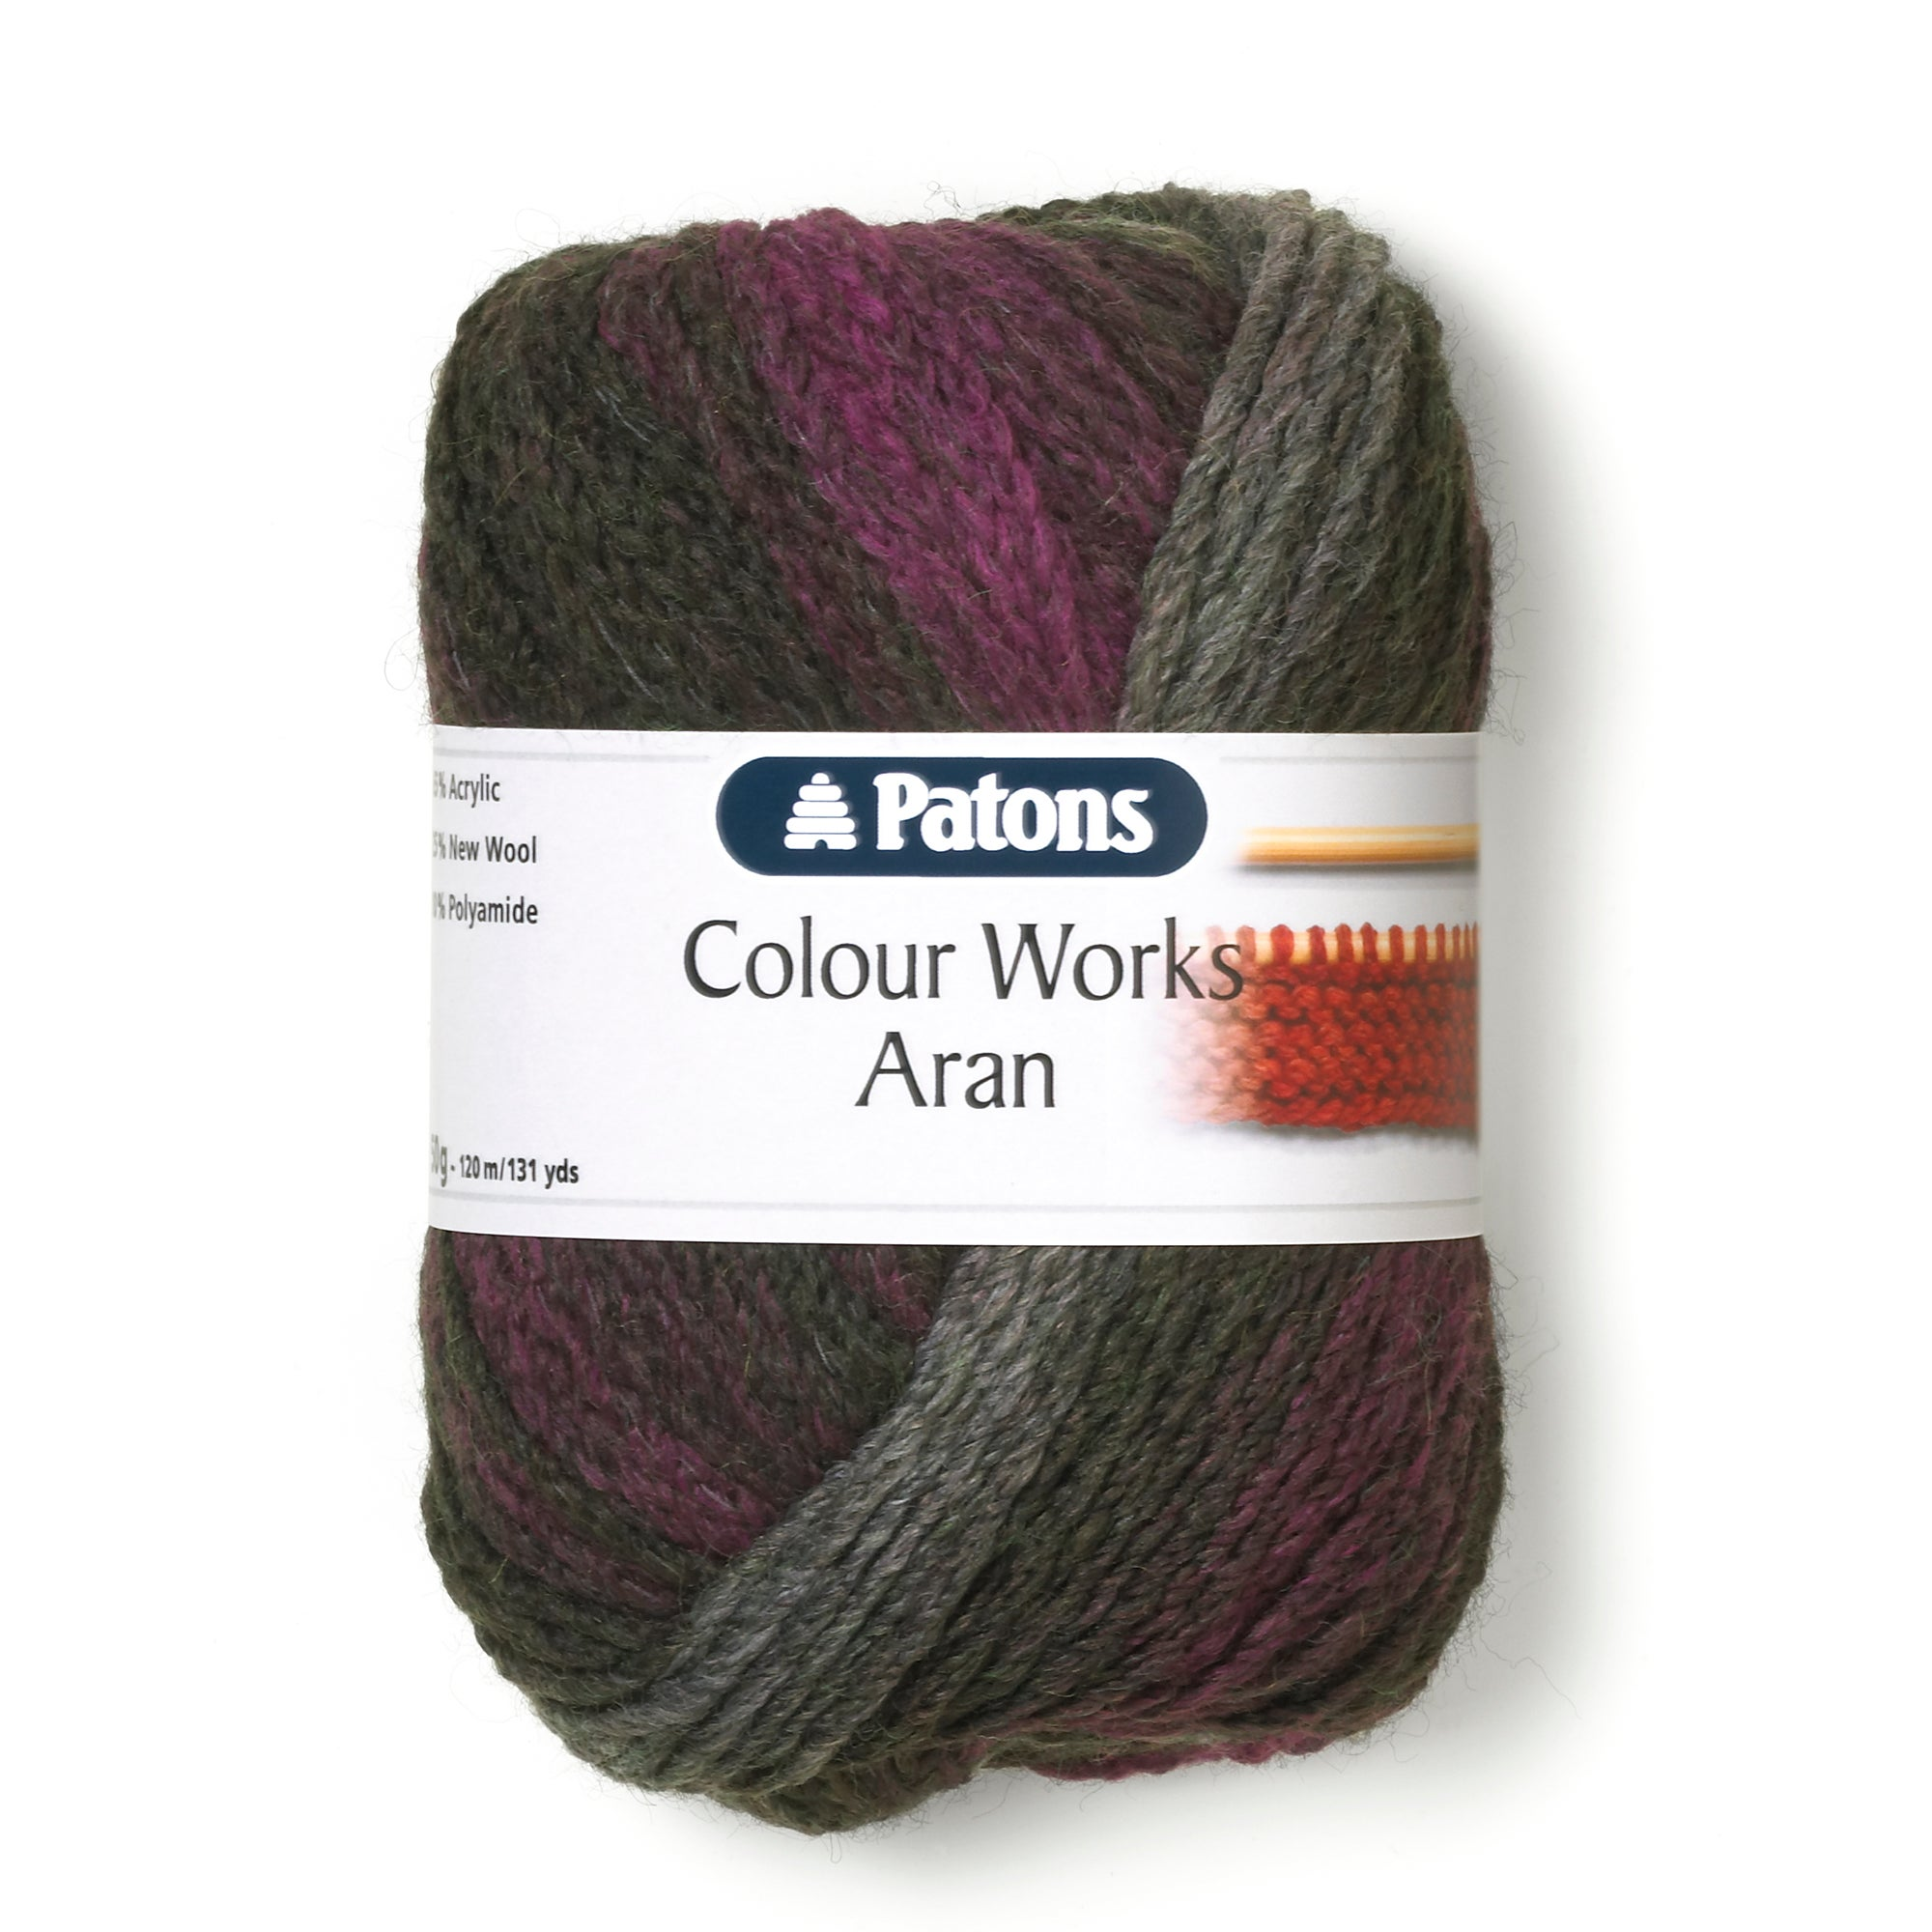 Patons Colour Works 50g Aran Yarn